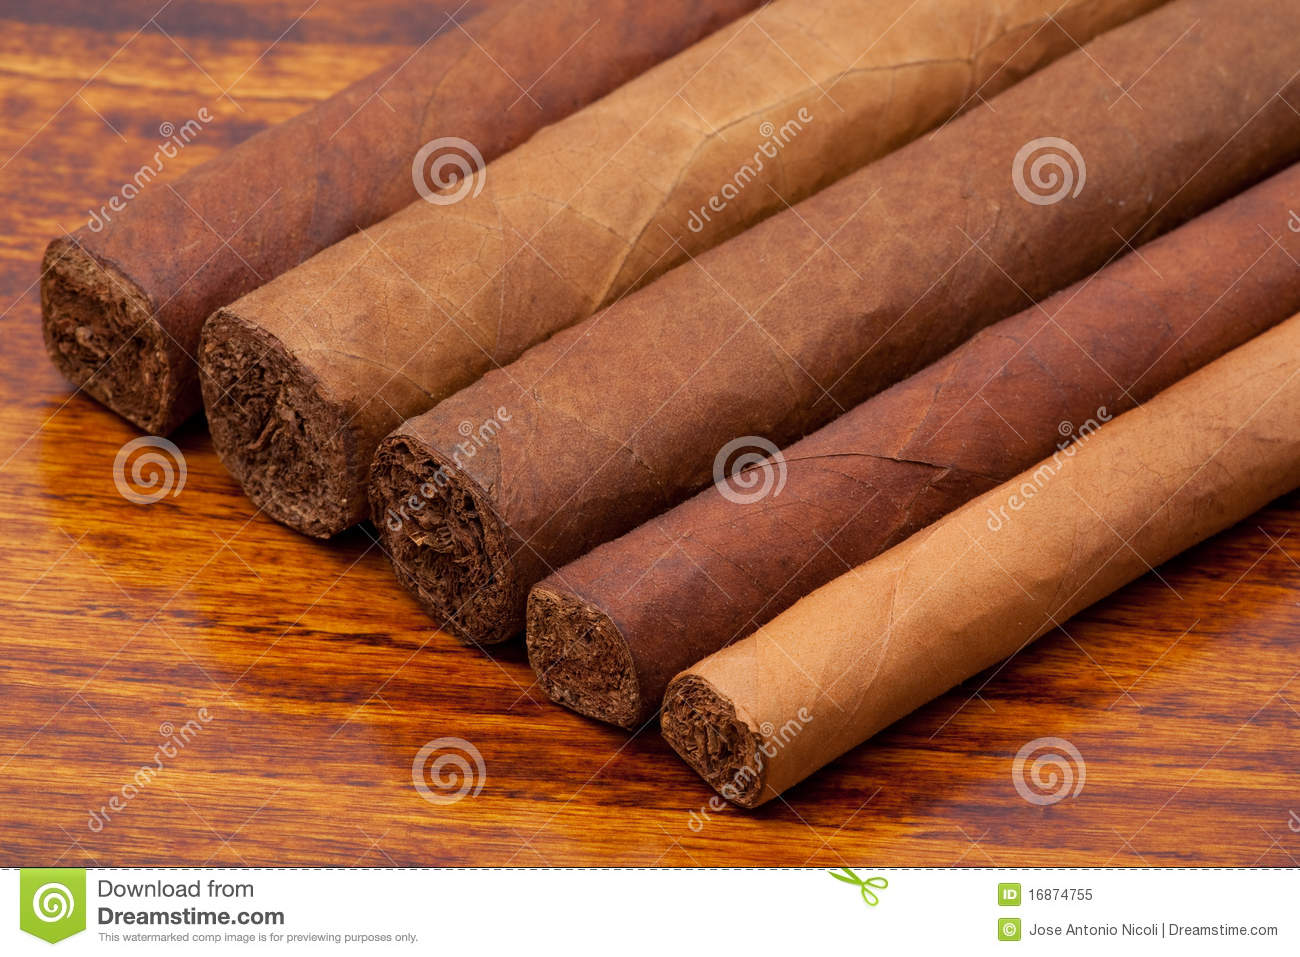 Cigars of different sizes close up